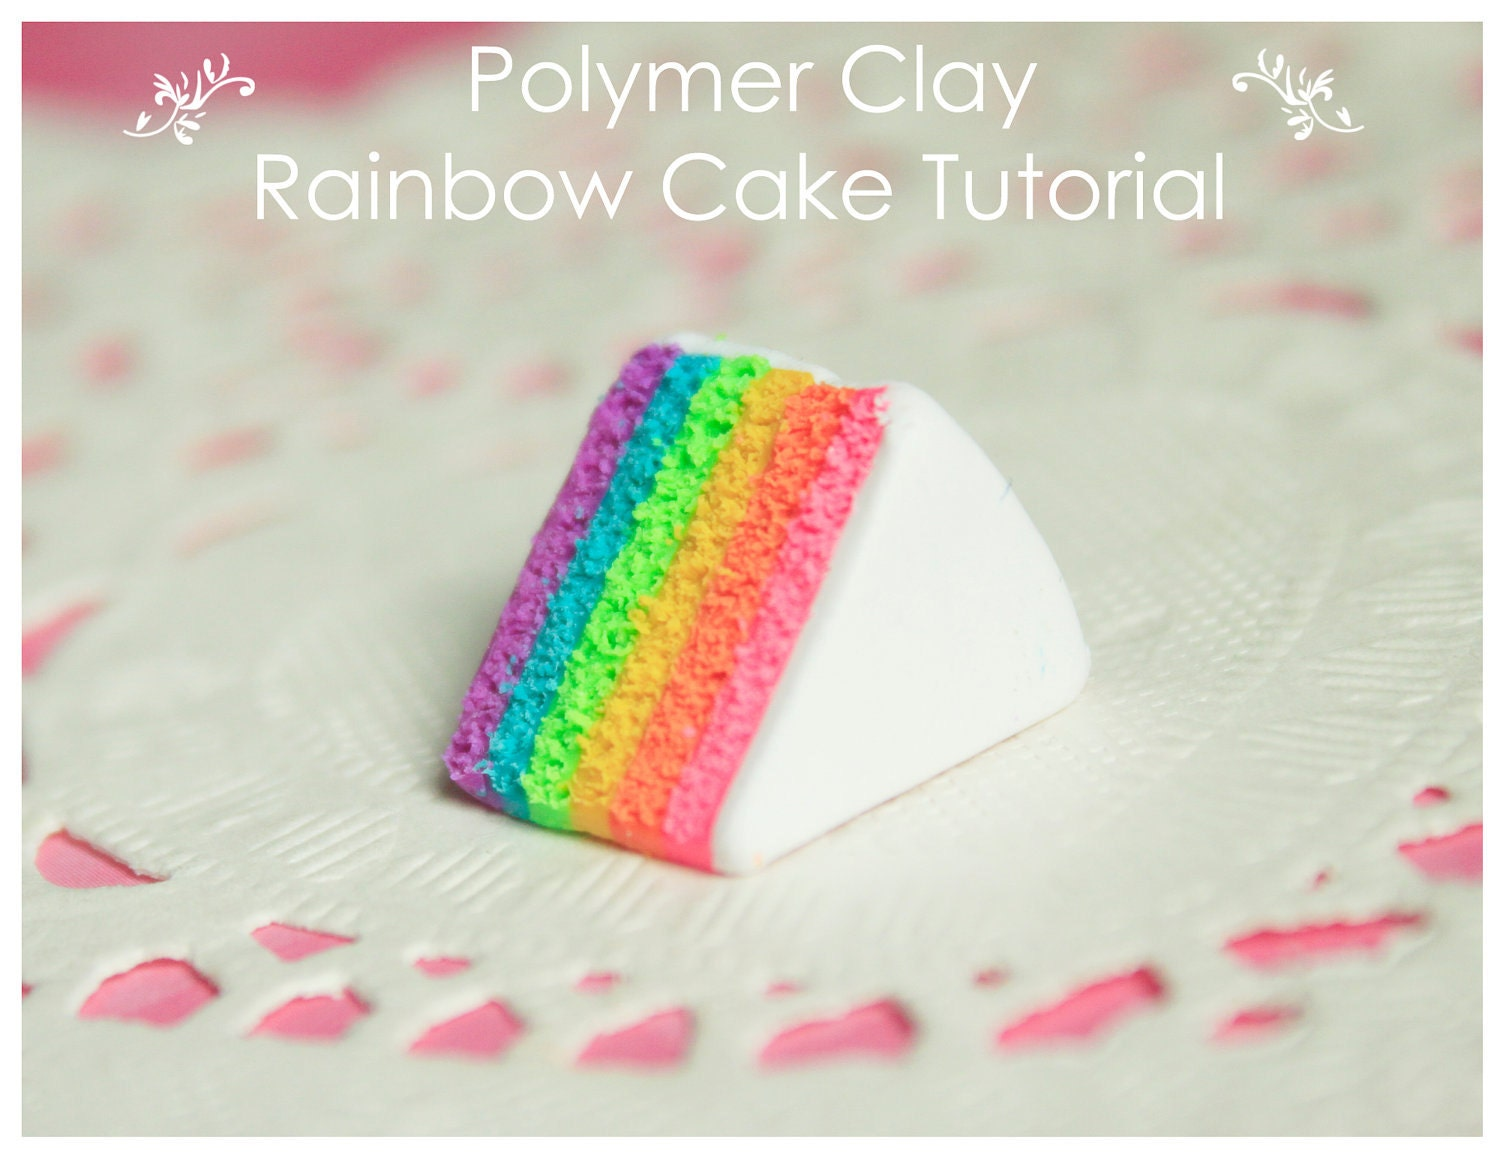 60% OFF - Miniature Polymer Clay Rainbow Cake Tutorial